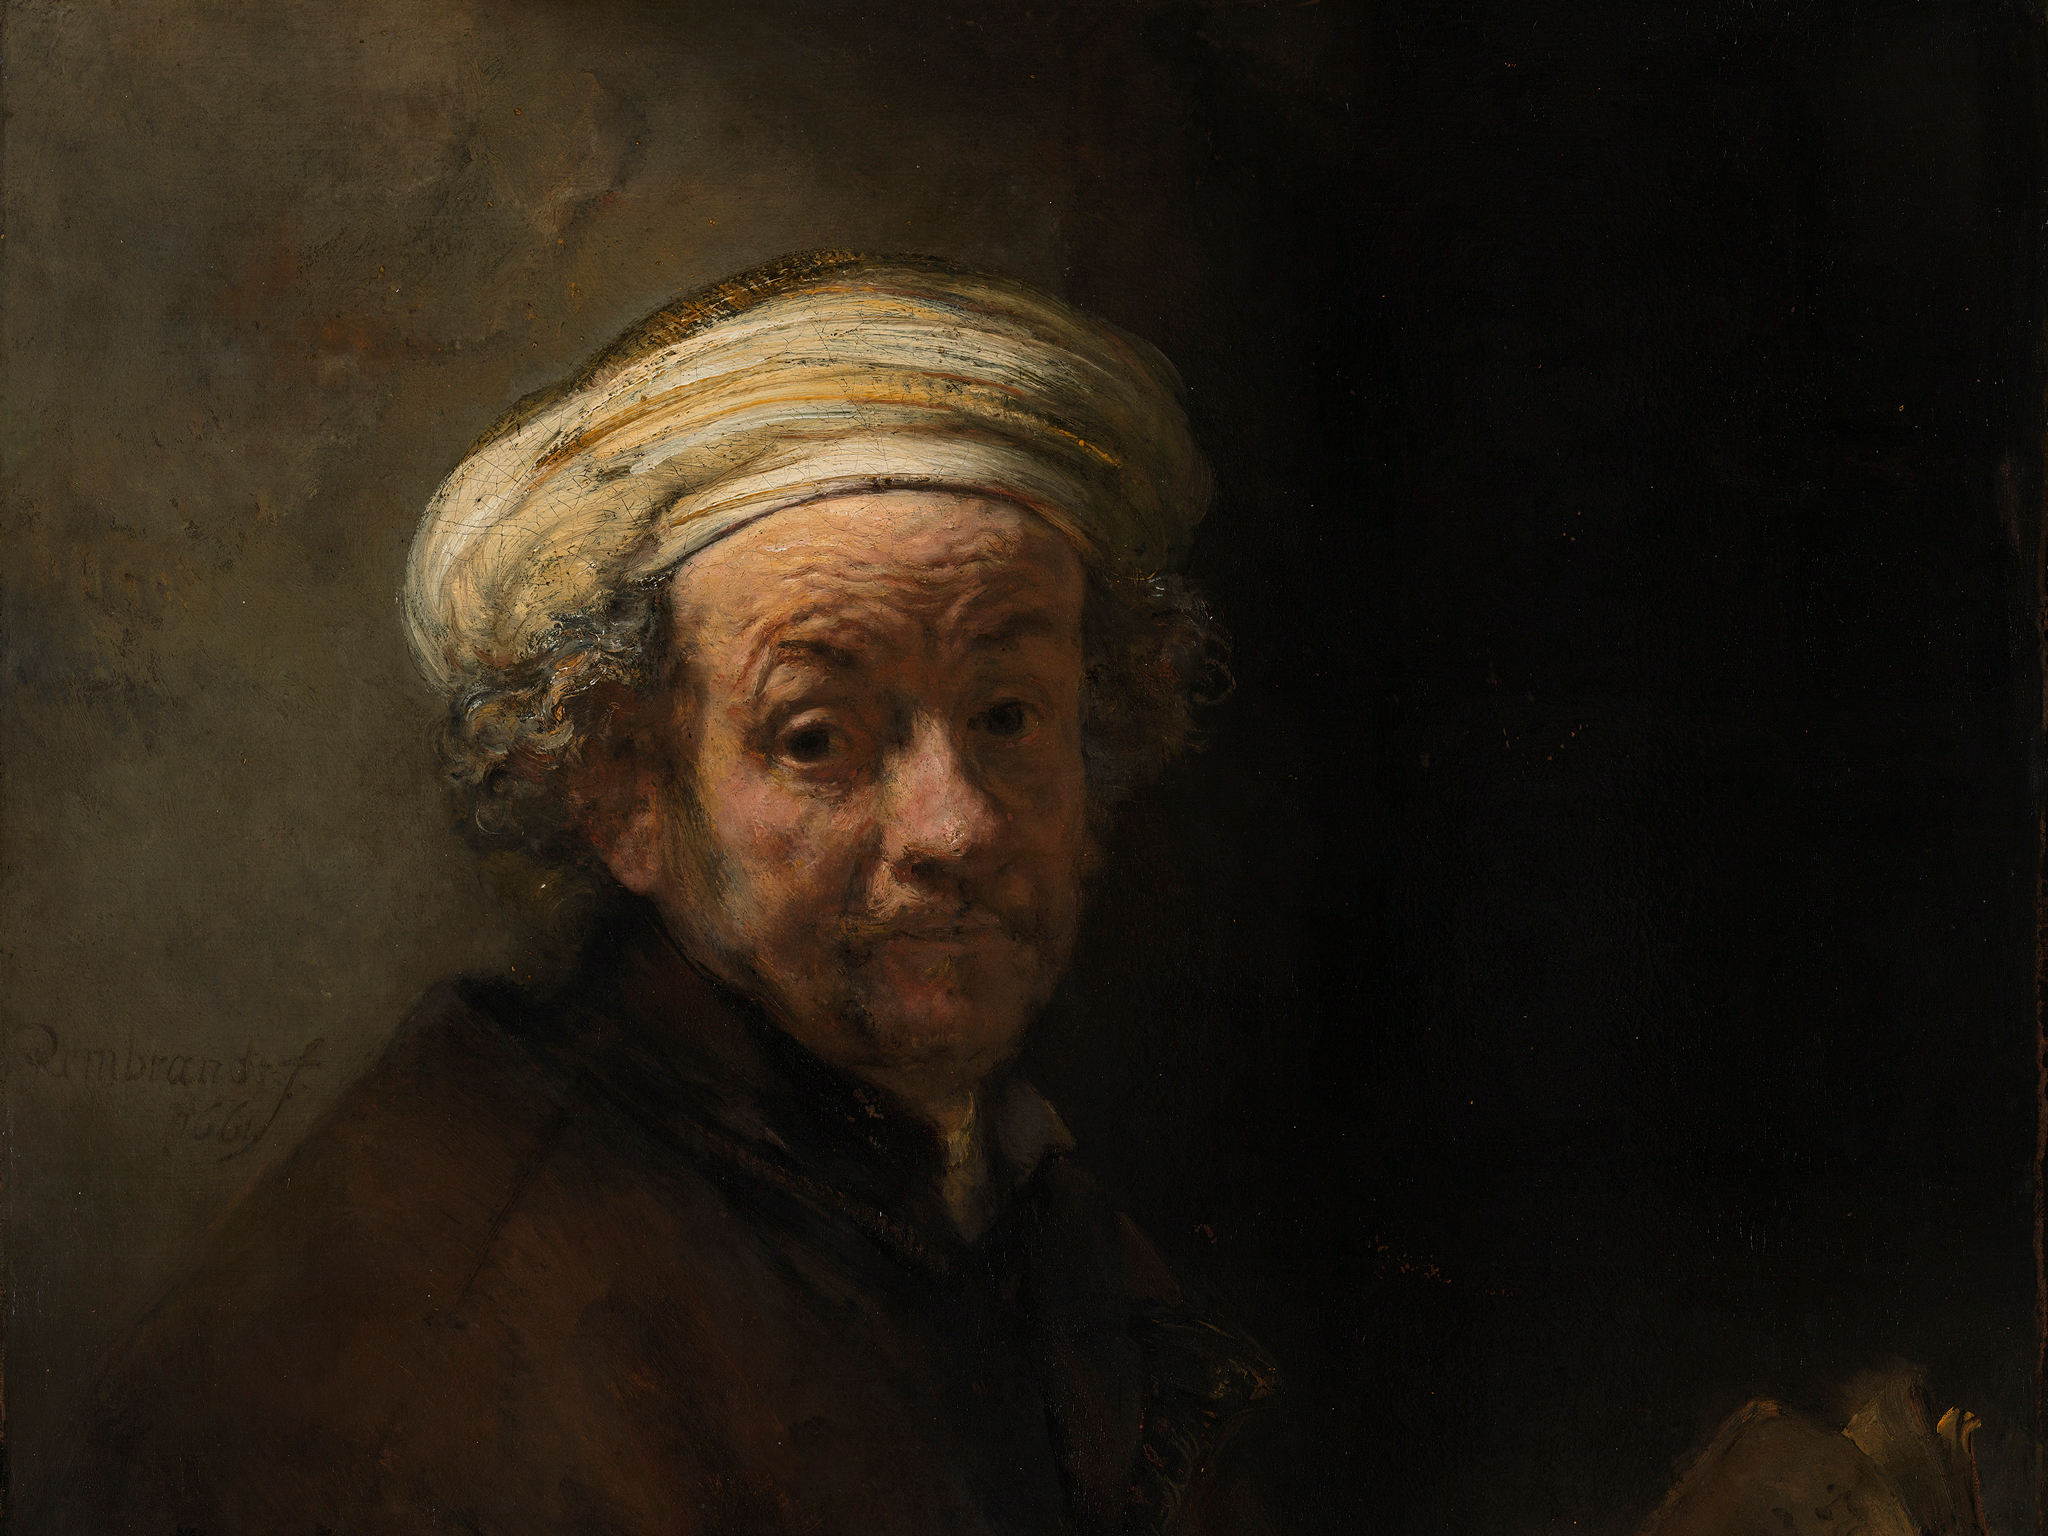 Rembrandt and the Golden Age of Dutch Art